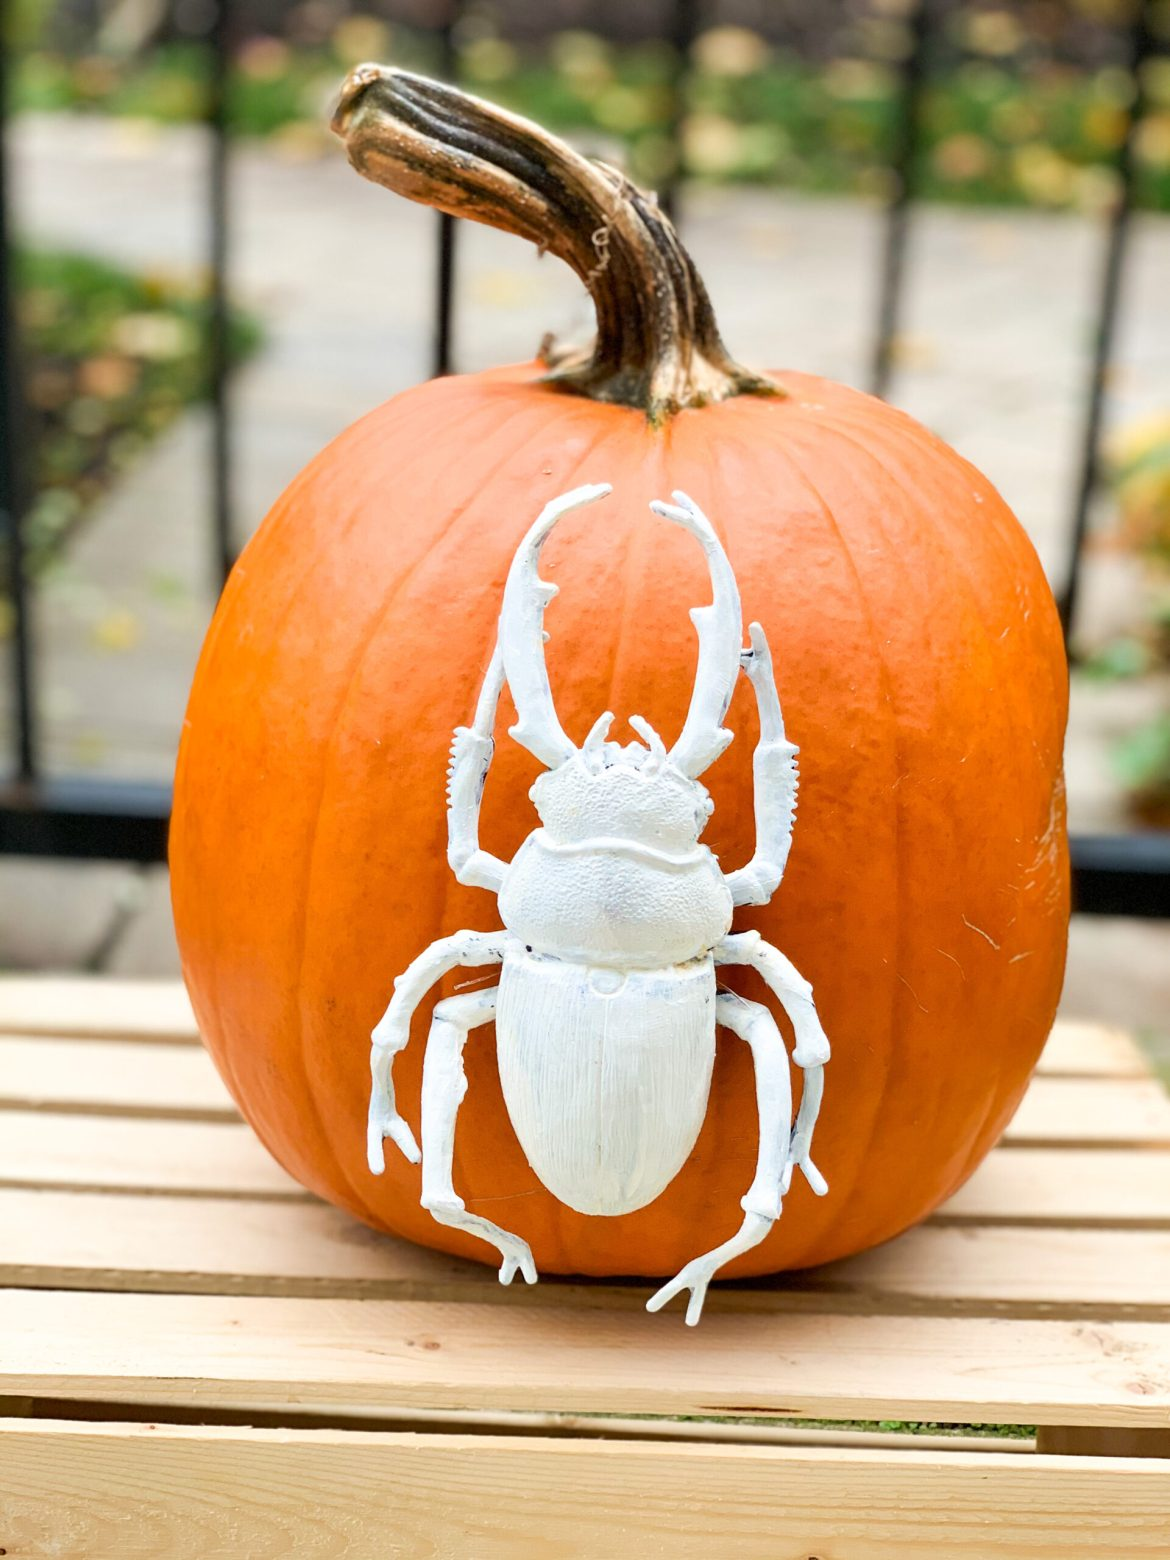 Challenge Friends to a Virtual Pumpkin Carving Competition